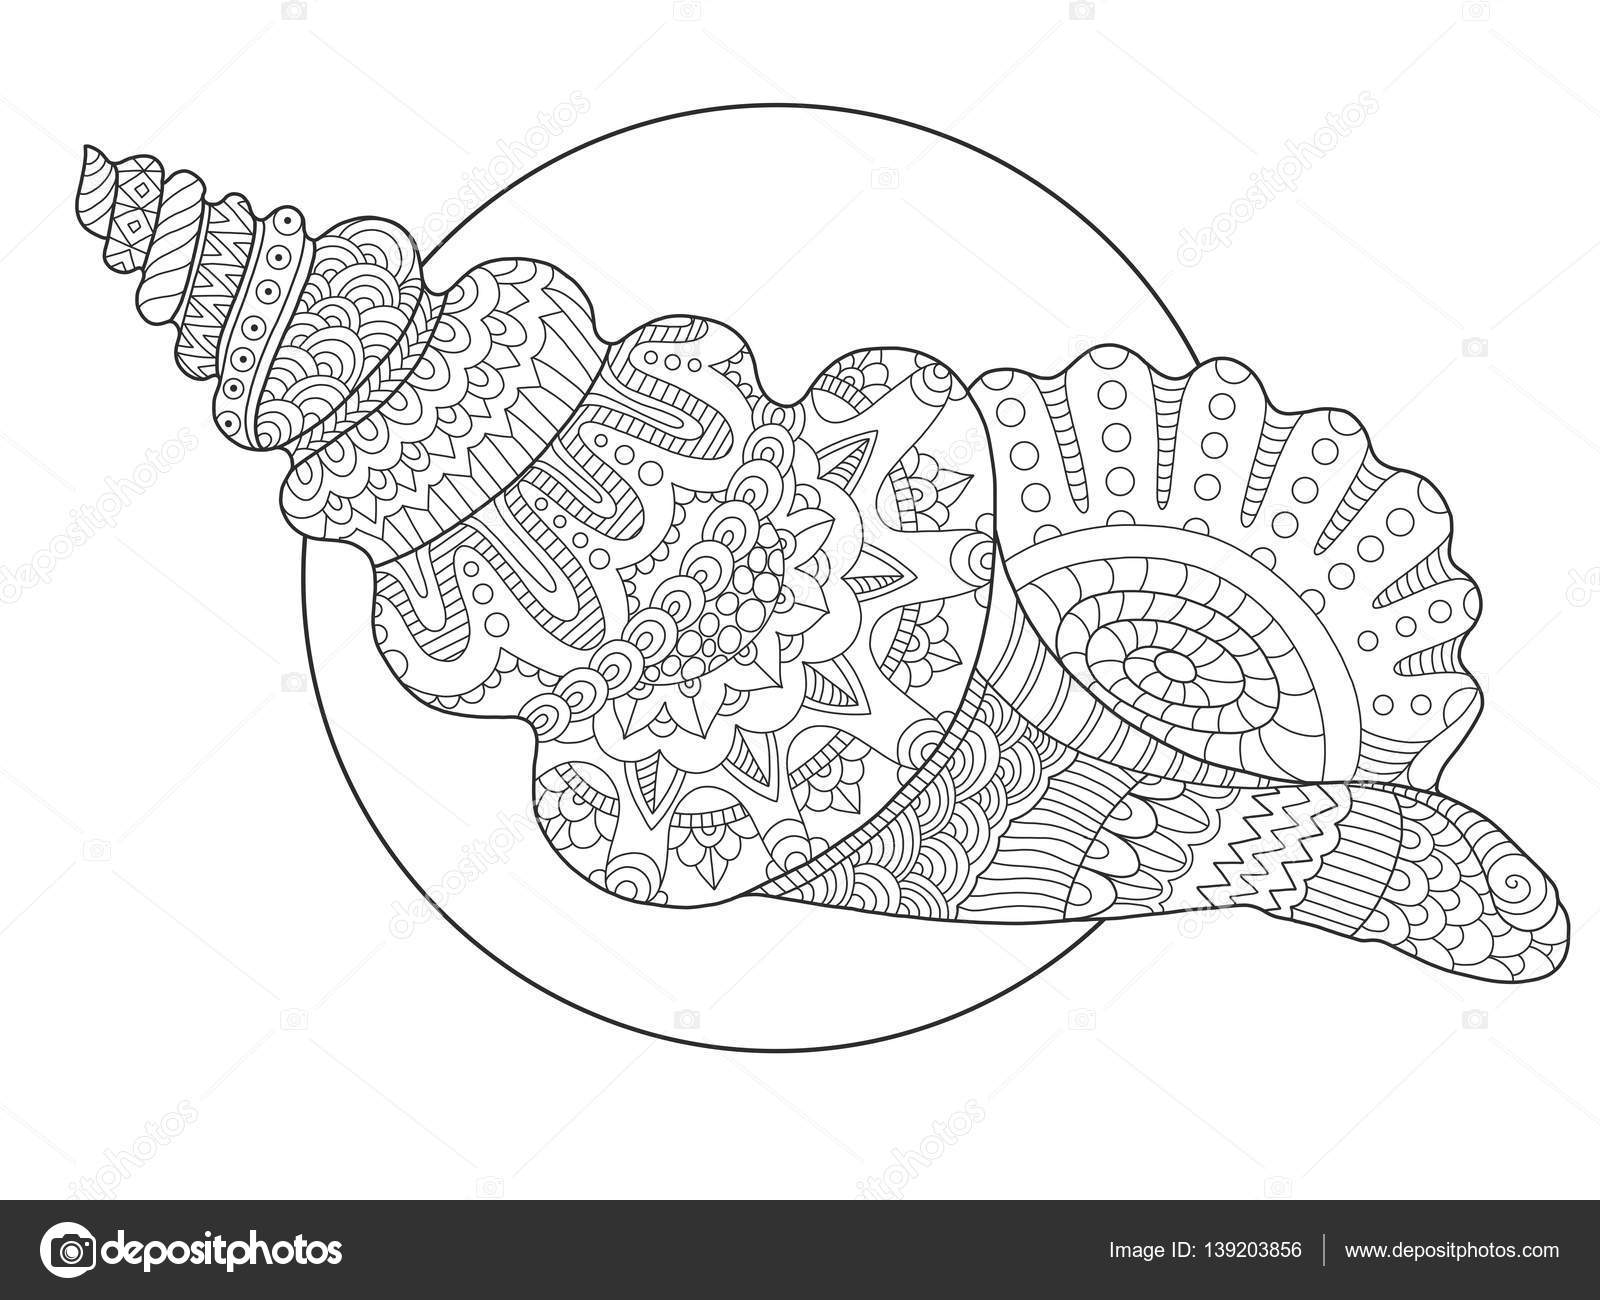 Inspirant Image Coquillage A Colorier